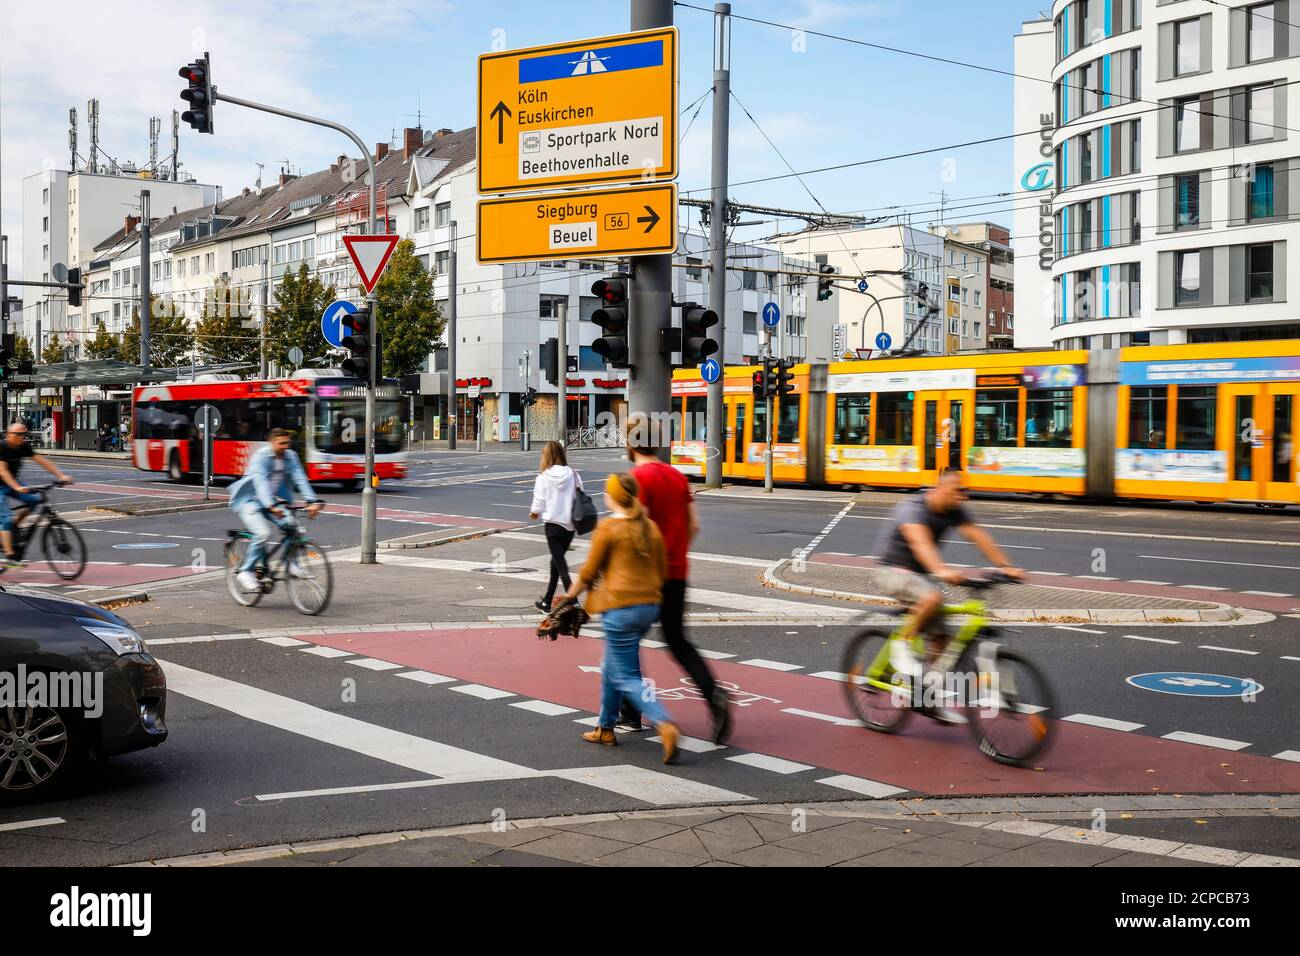 Bonn, North Rhine-Westphalia, Germany - street intersection with pedestrians, cyclists, cars, bus and tram. Stock Photo